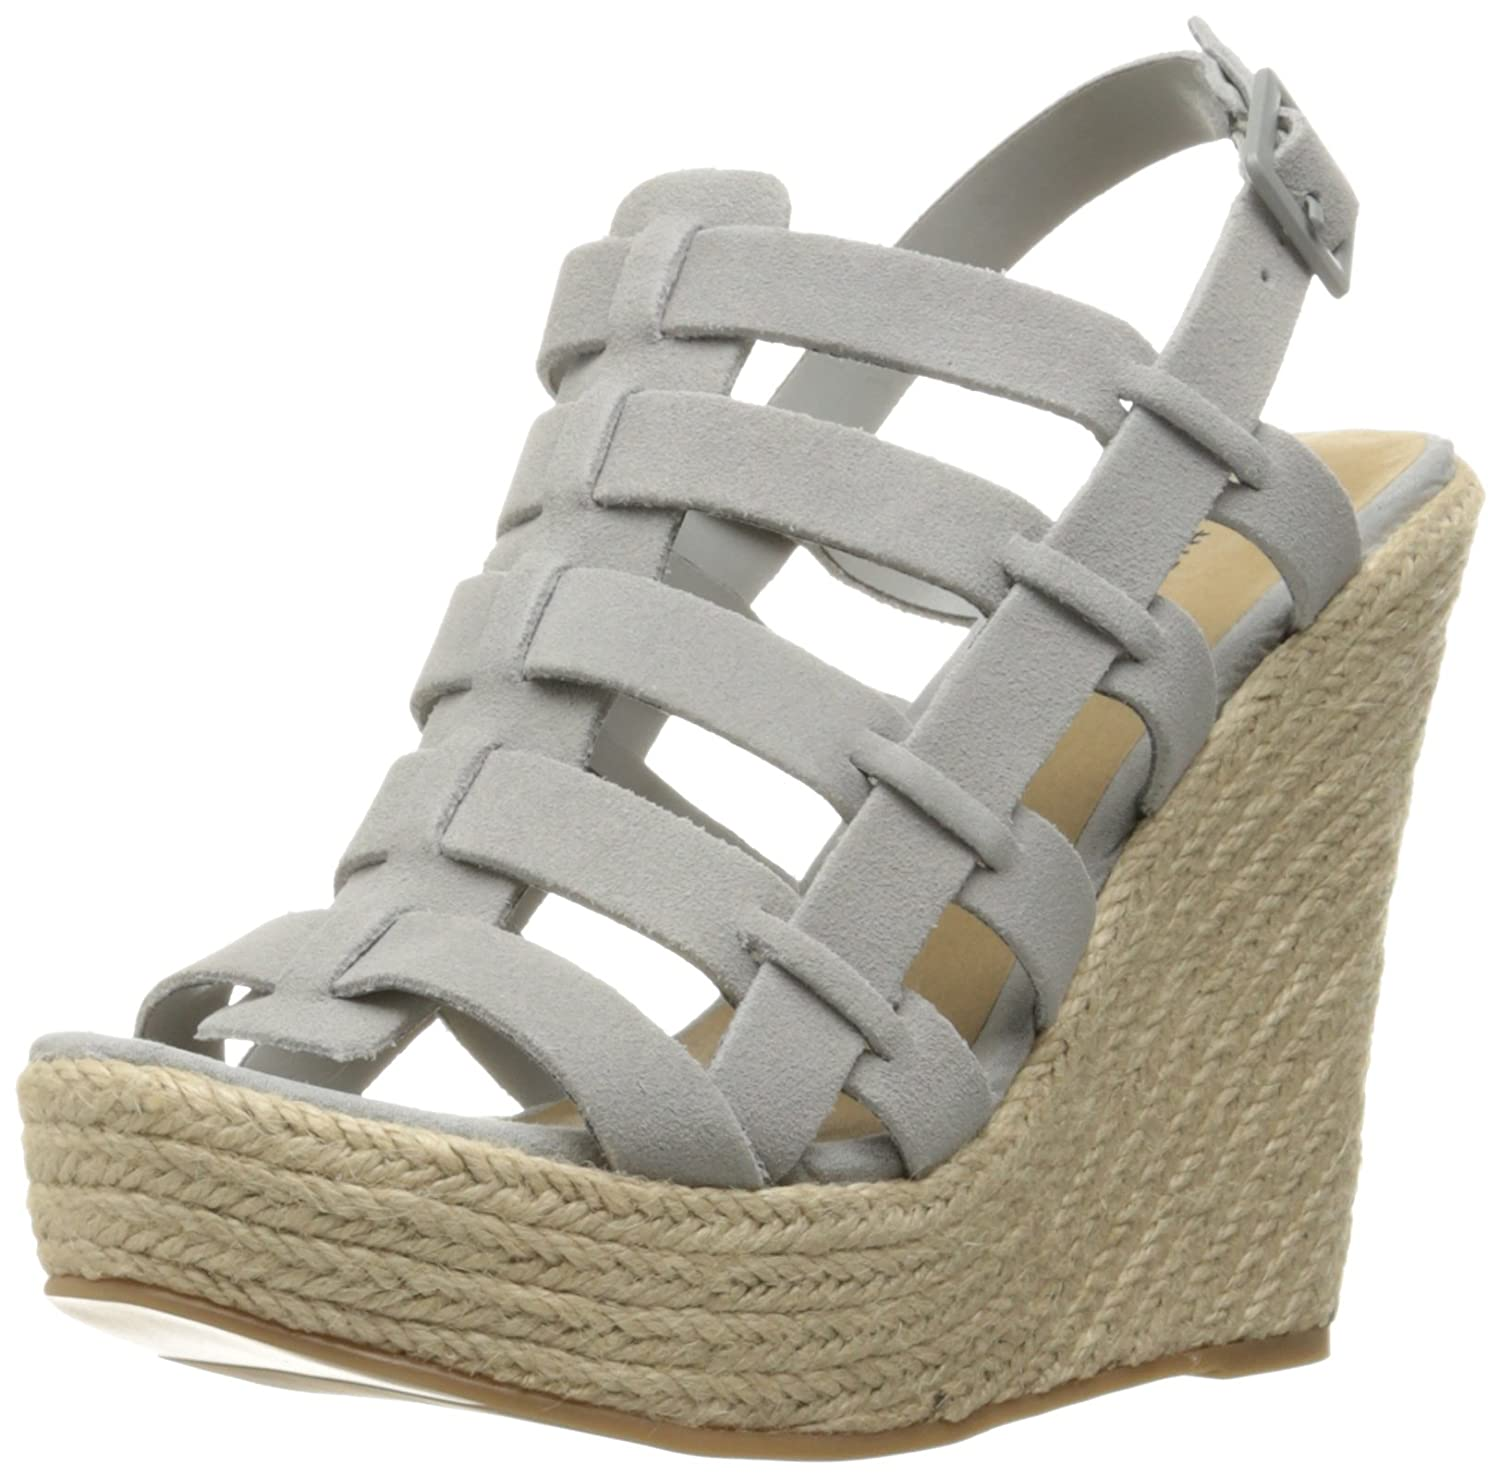 Chinese Laundry Women's Dance Party Espadrille Wedge Sandal B01JK442VE 9.5 B(M) US|Grey/Blue Suede